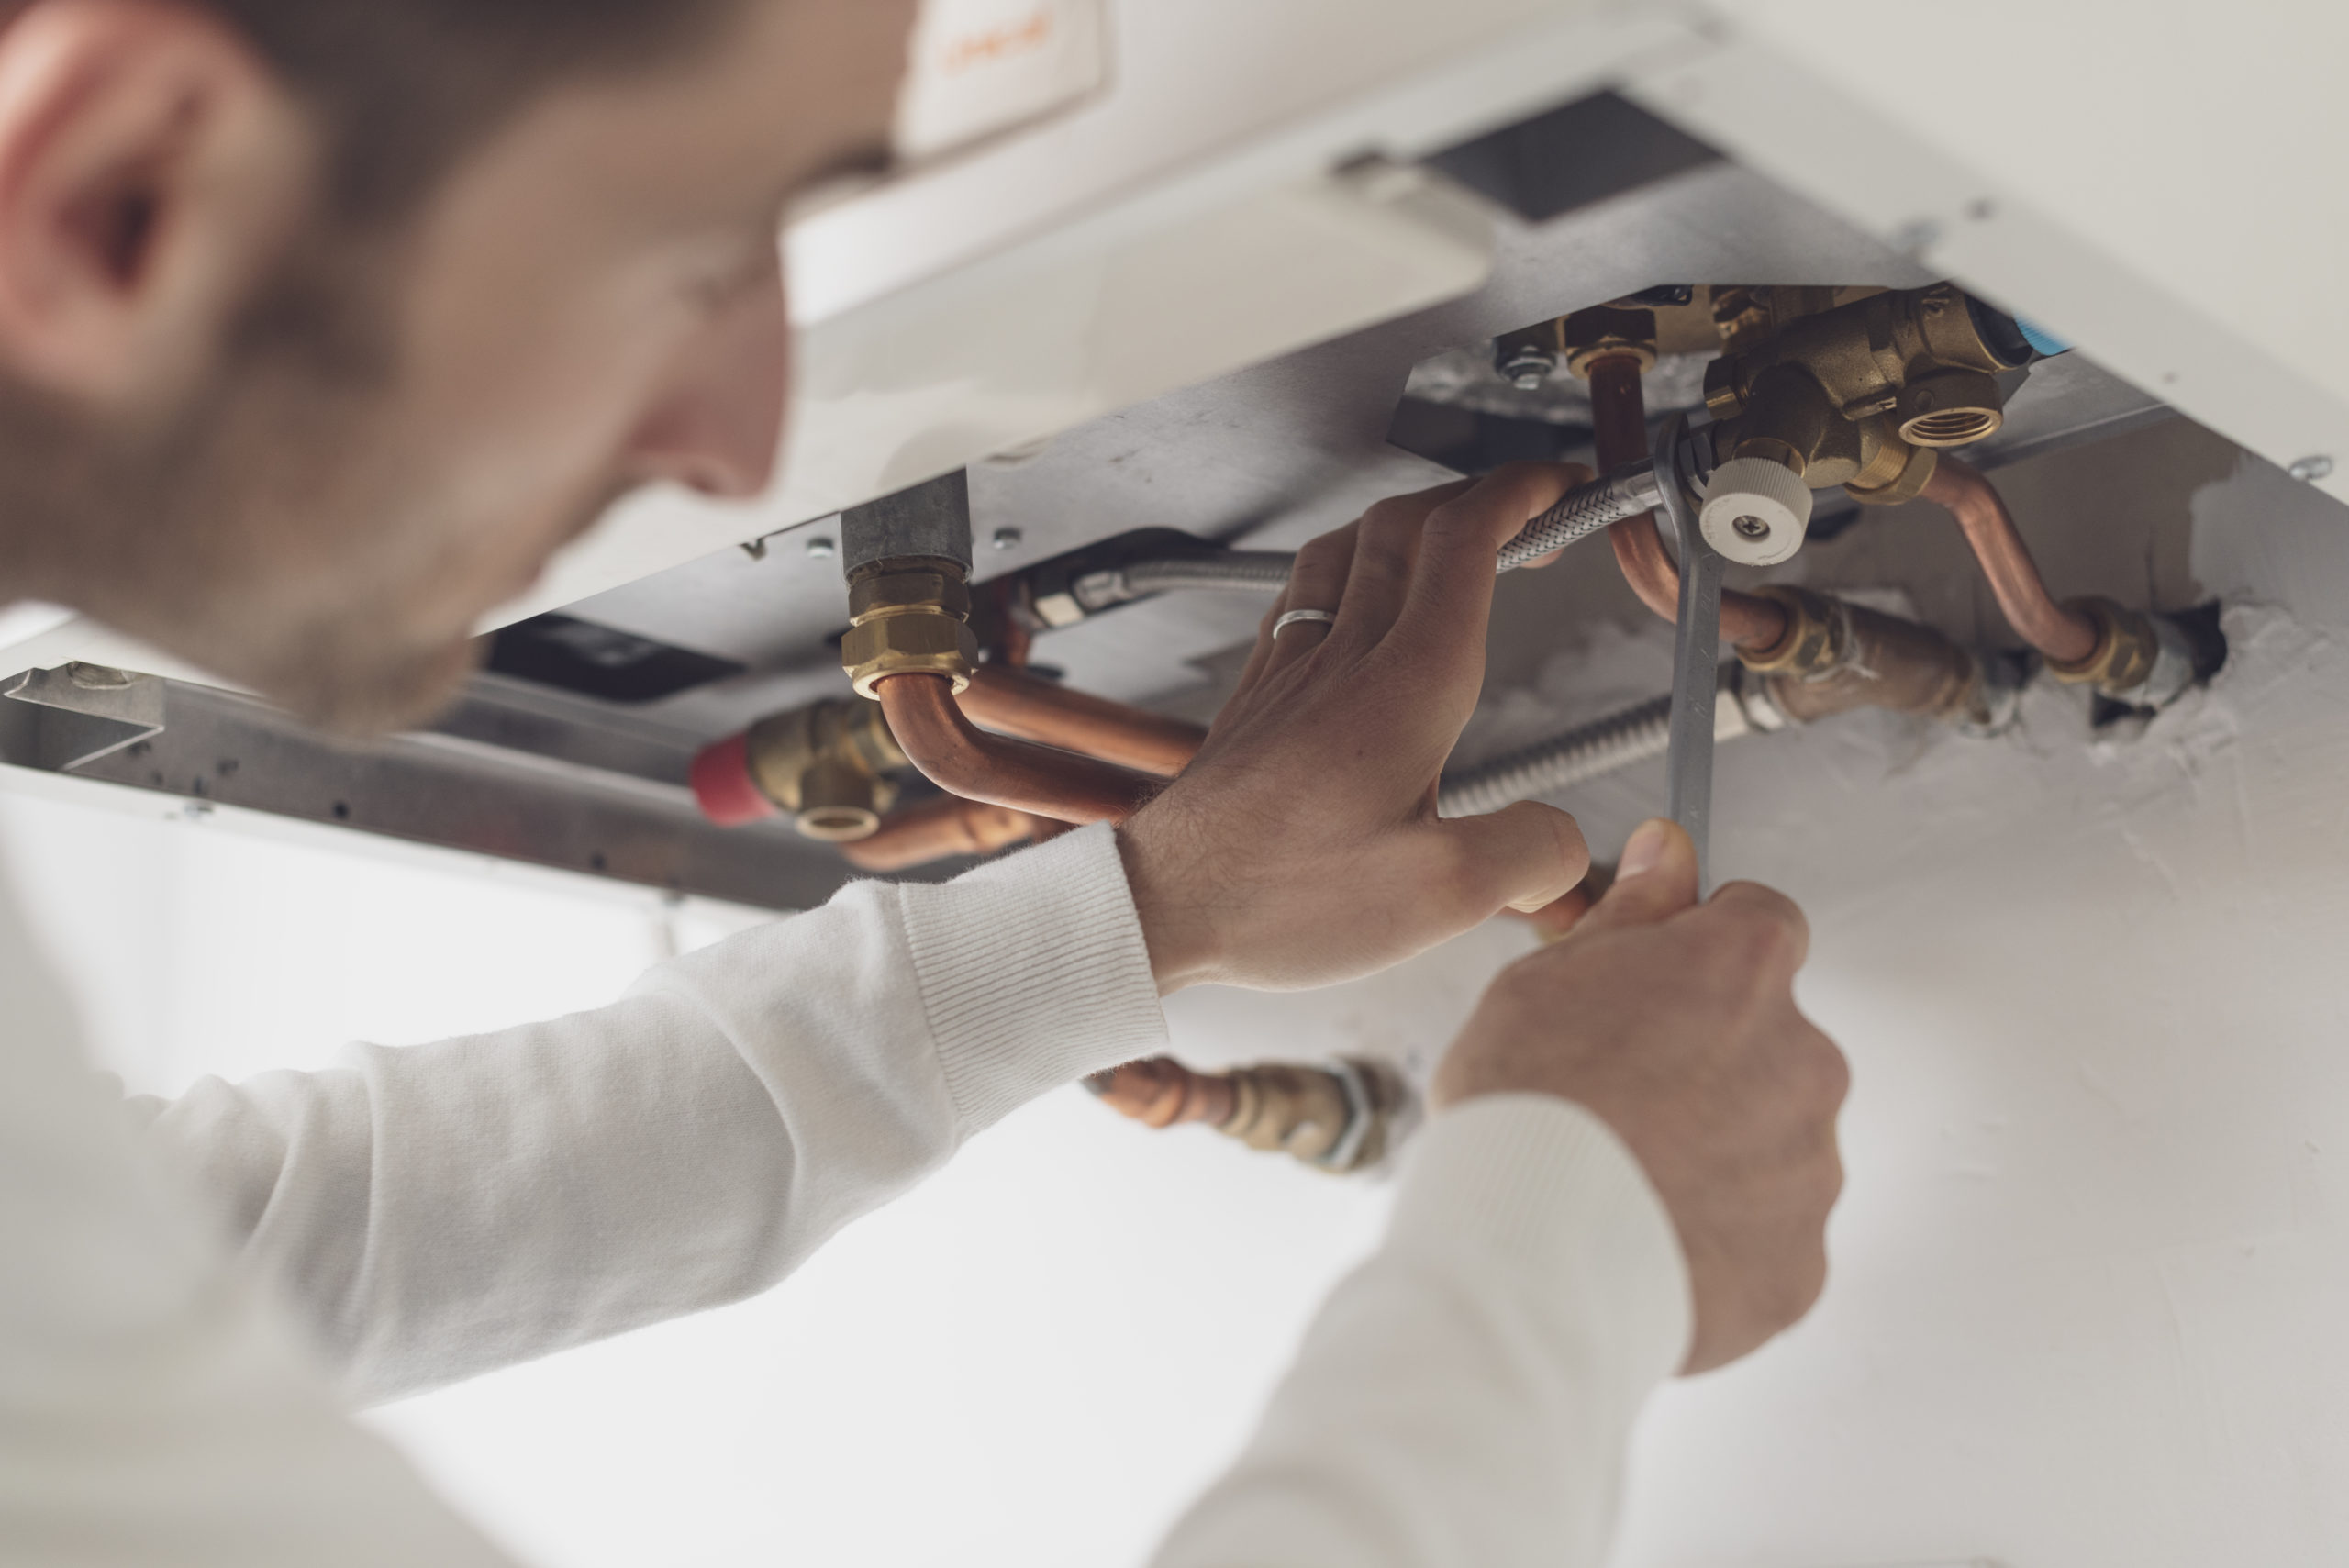 Professional plumber checking a boiler